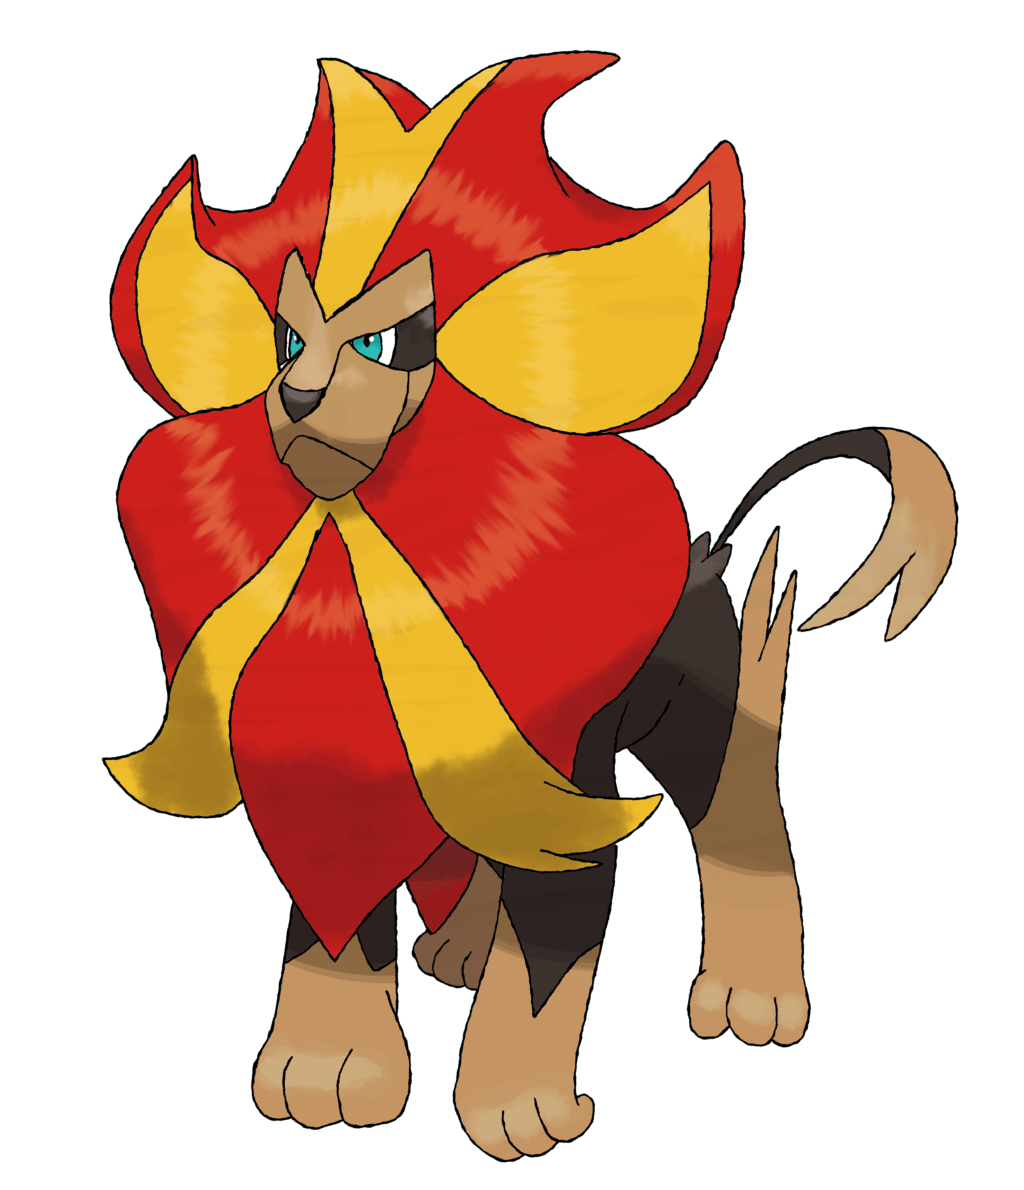 Pyroar (Male) by TheAngryAron on DeviantArt